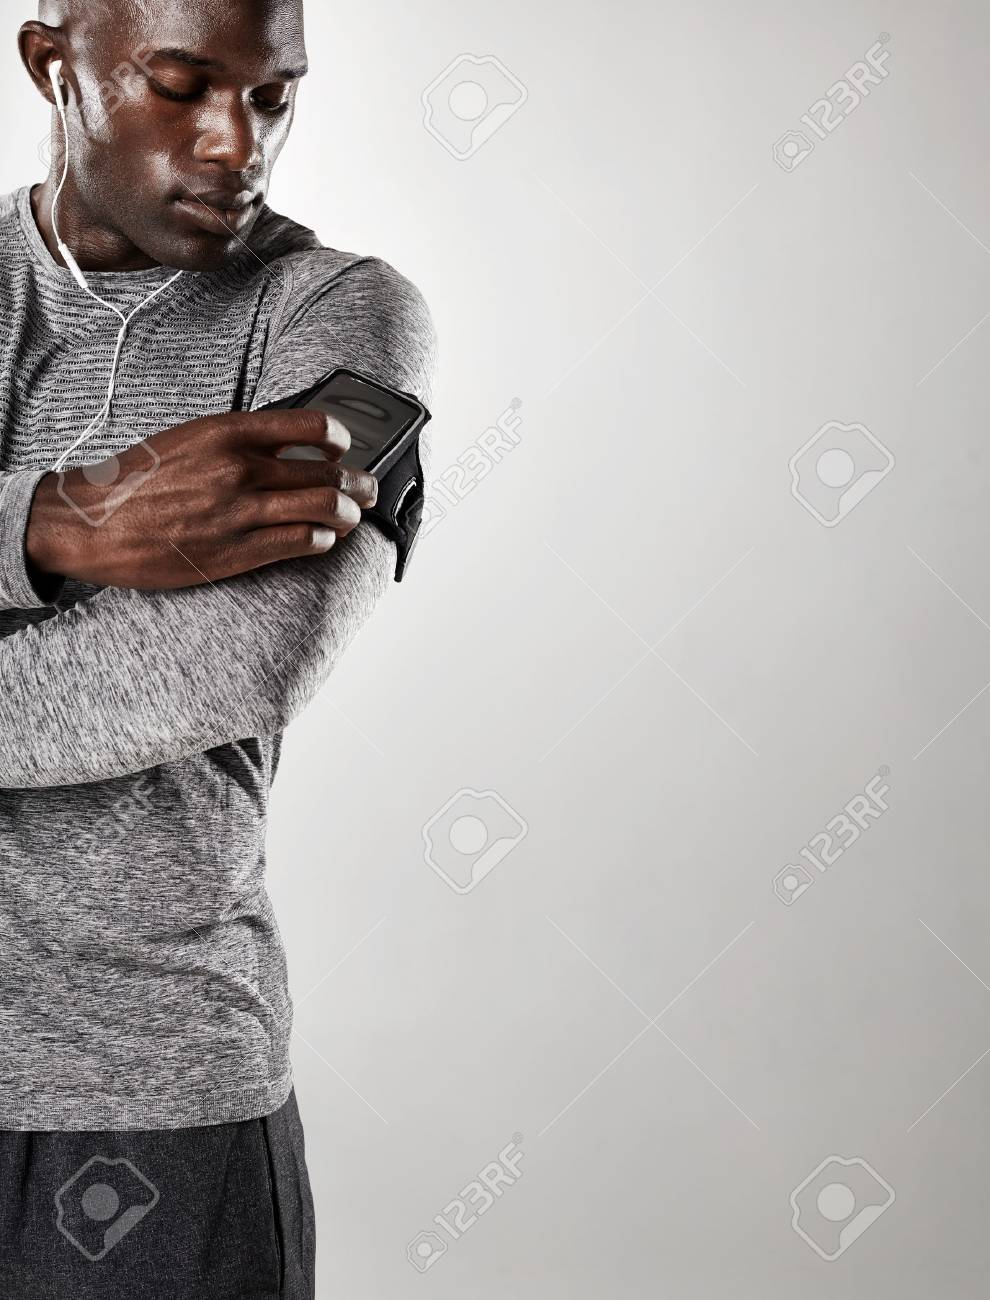 Shot of young black male model listening to music on cell phone man with mobile